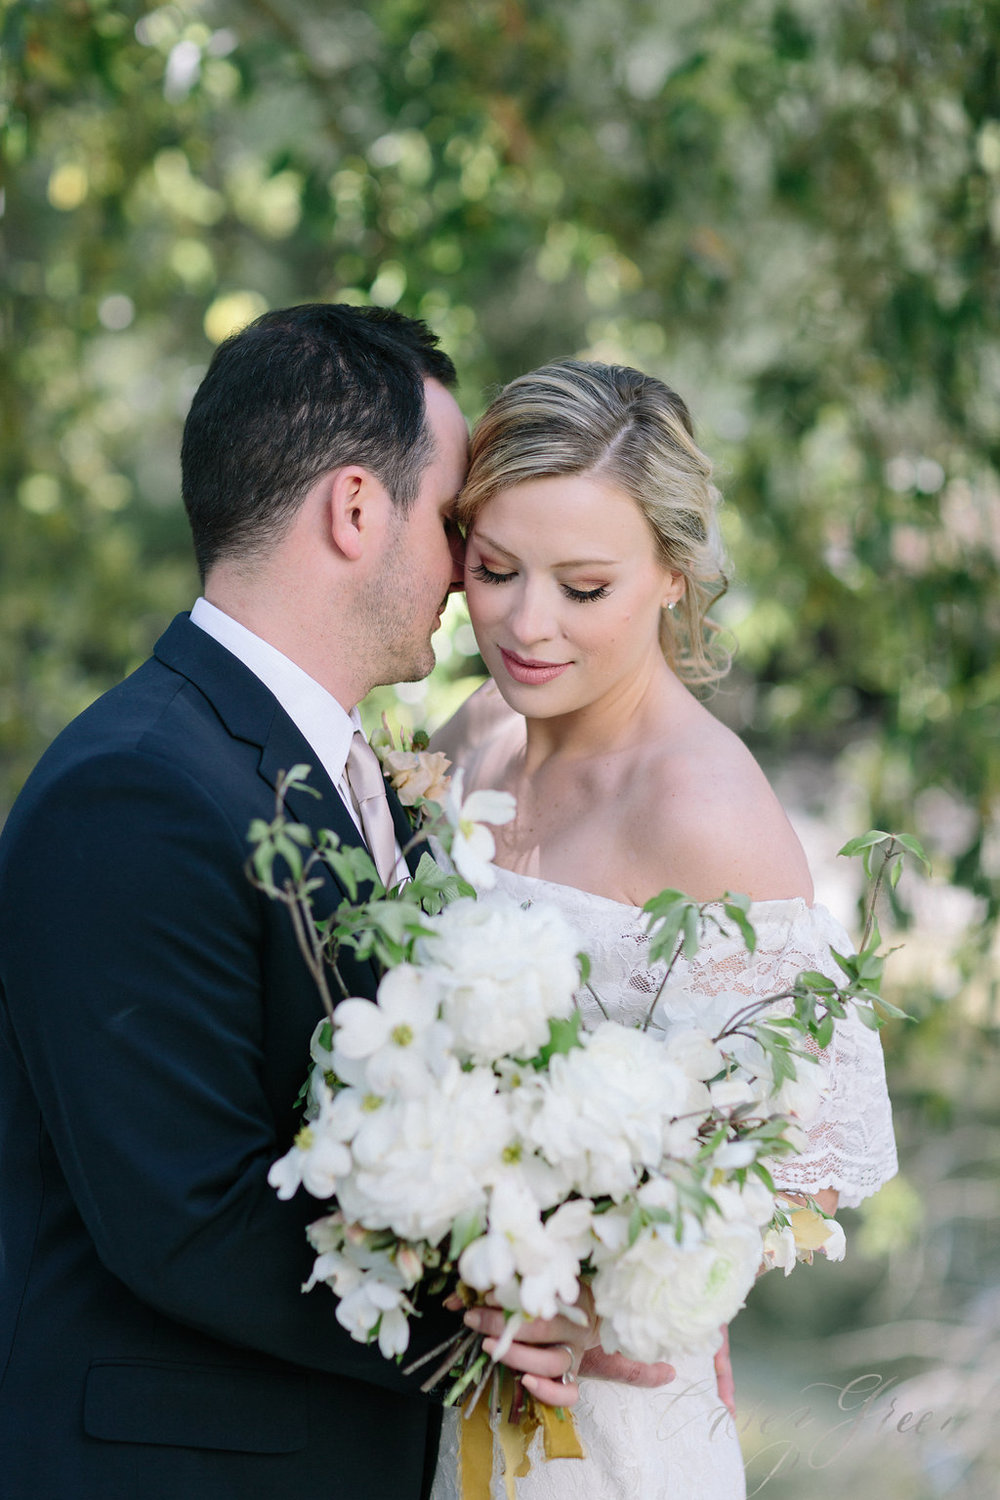 savannah-bridal-shop-ivory-and-beau-bridal-boutique-casey-green-photography-tybee-island-chapel-wedding-planning-mistakes-16.jpg